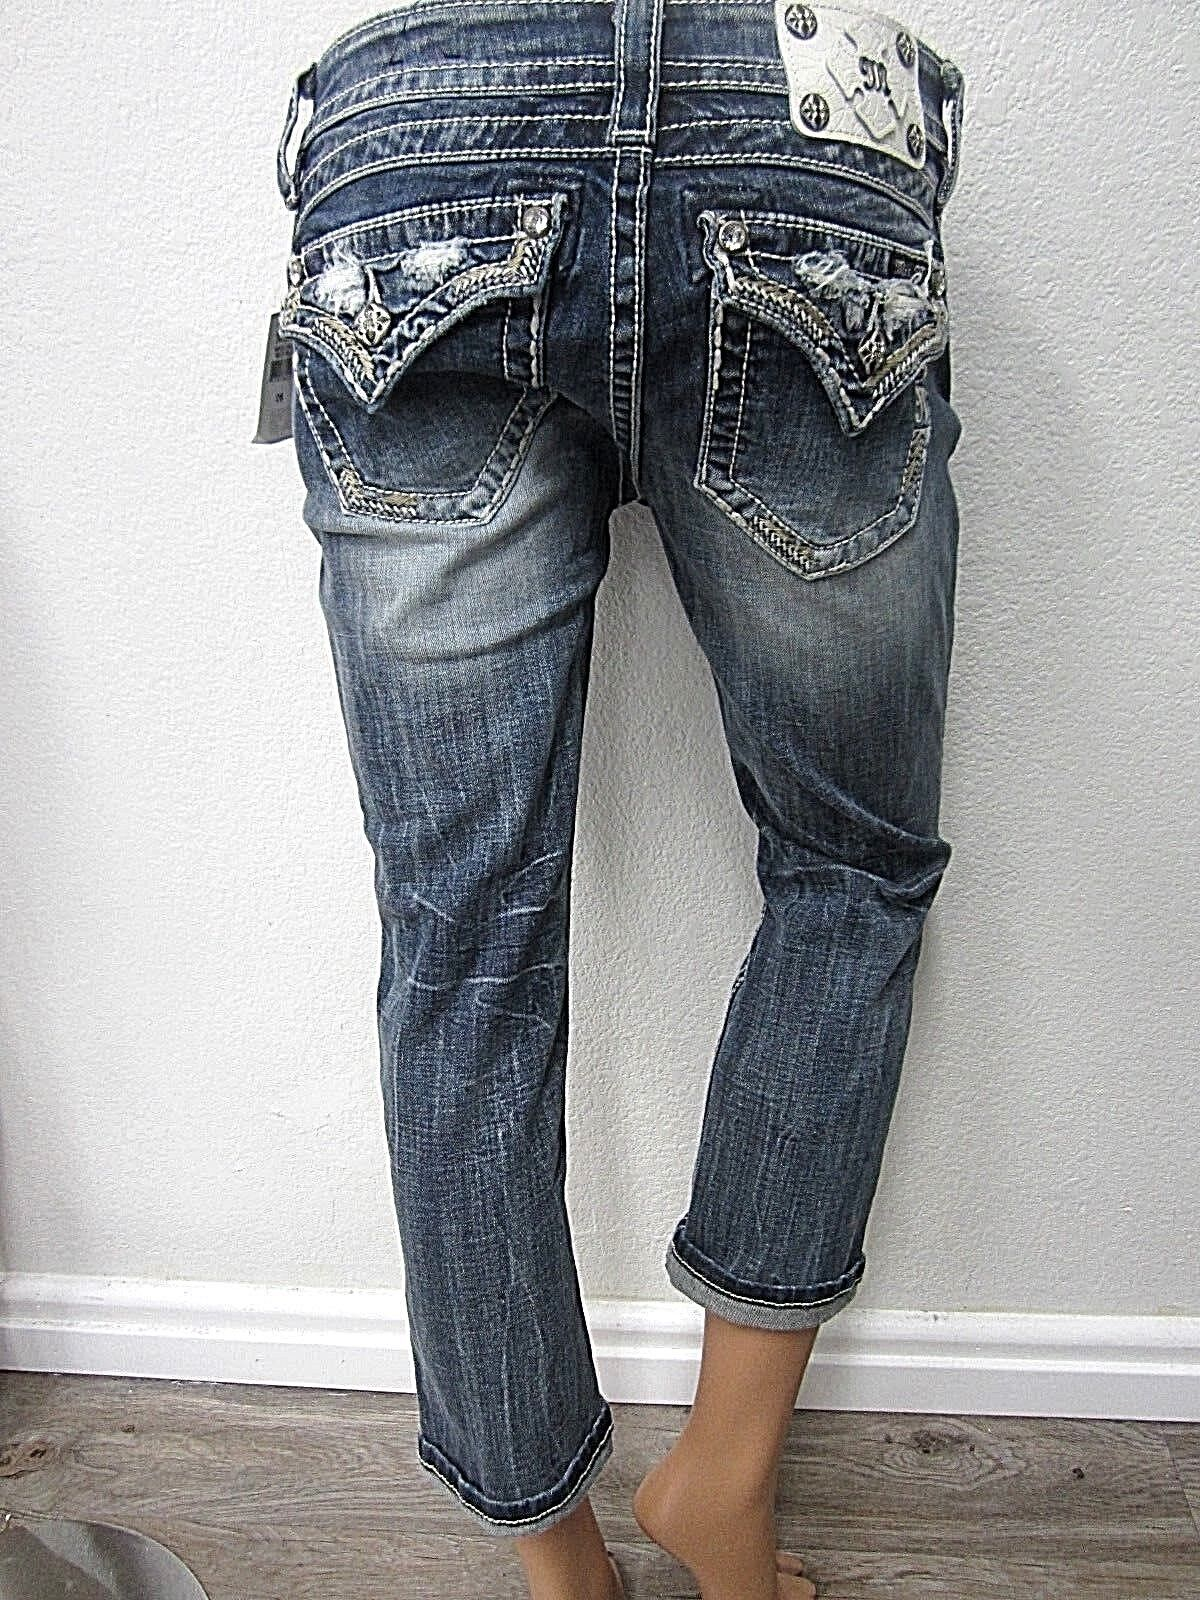 NWT  MISS ME EMBELLISHED Standard Cropped Jeans ME8518C3 sz 26 X 23